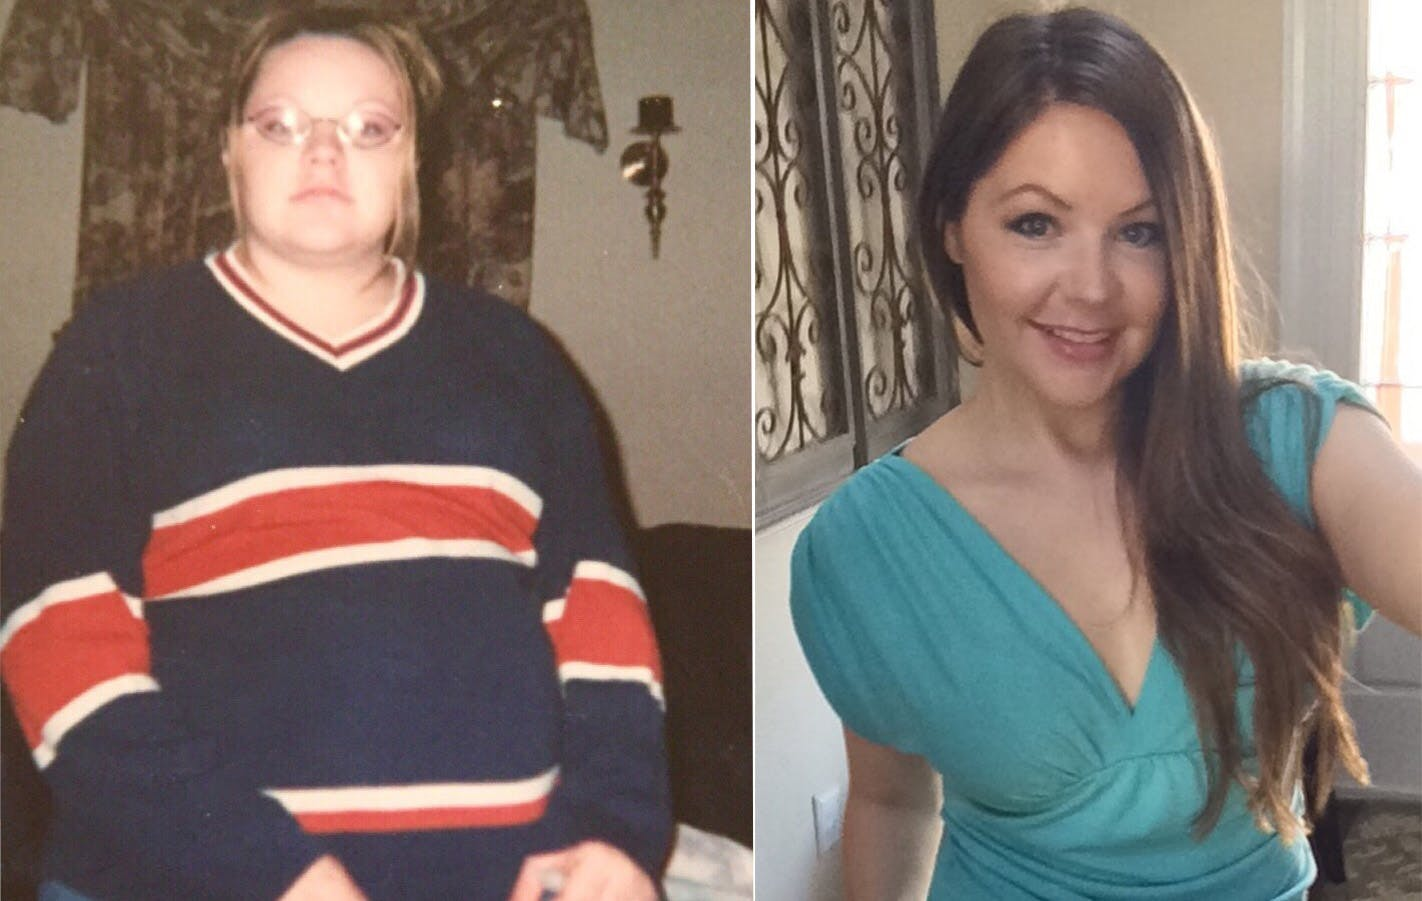 How Melissa lost 100 pounds with a keto diet, and kept it off for 15 years